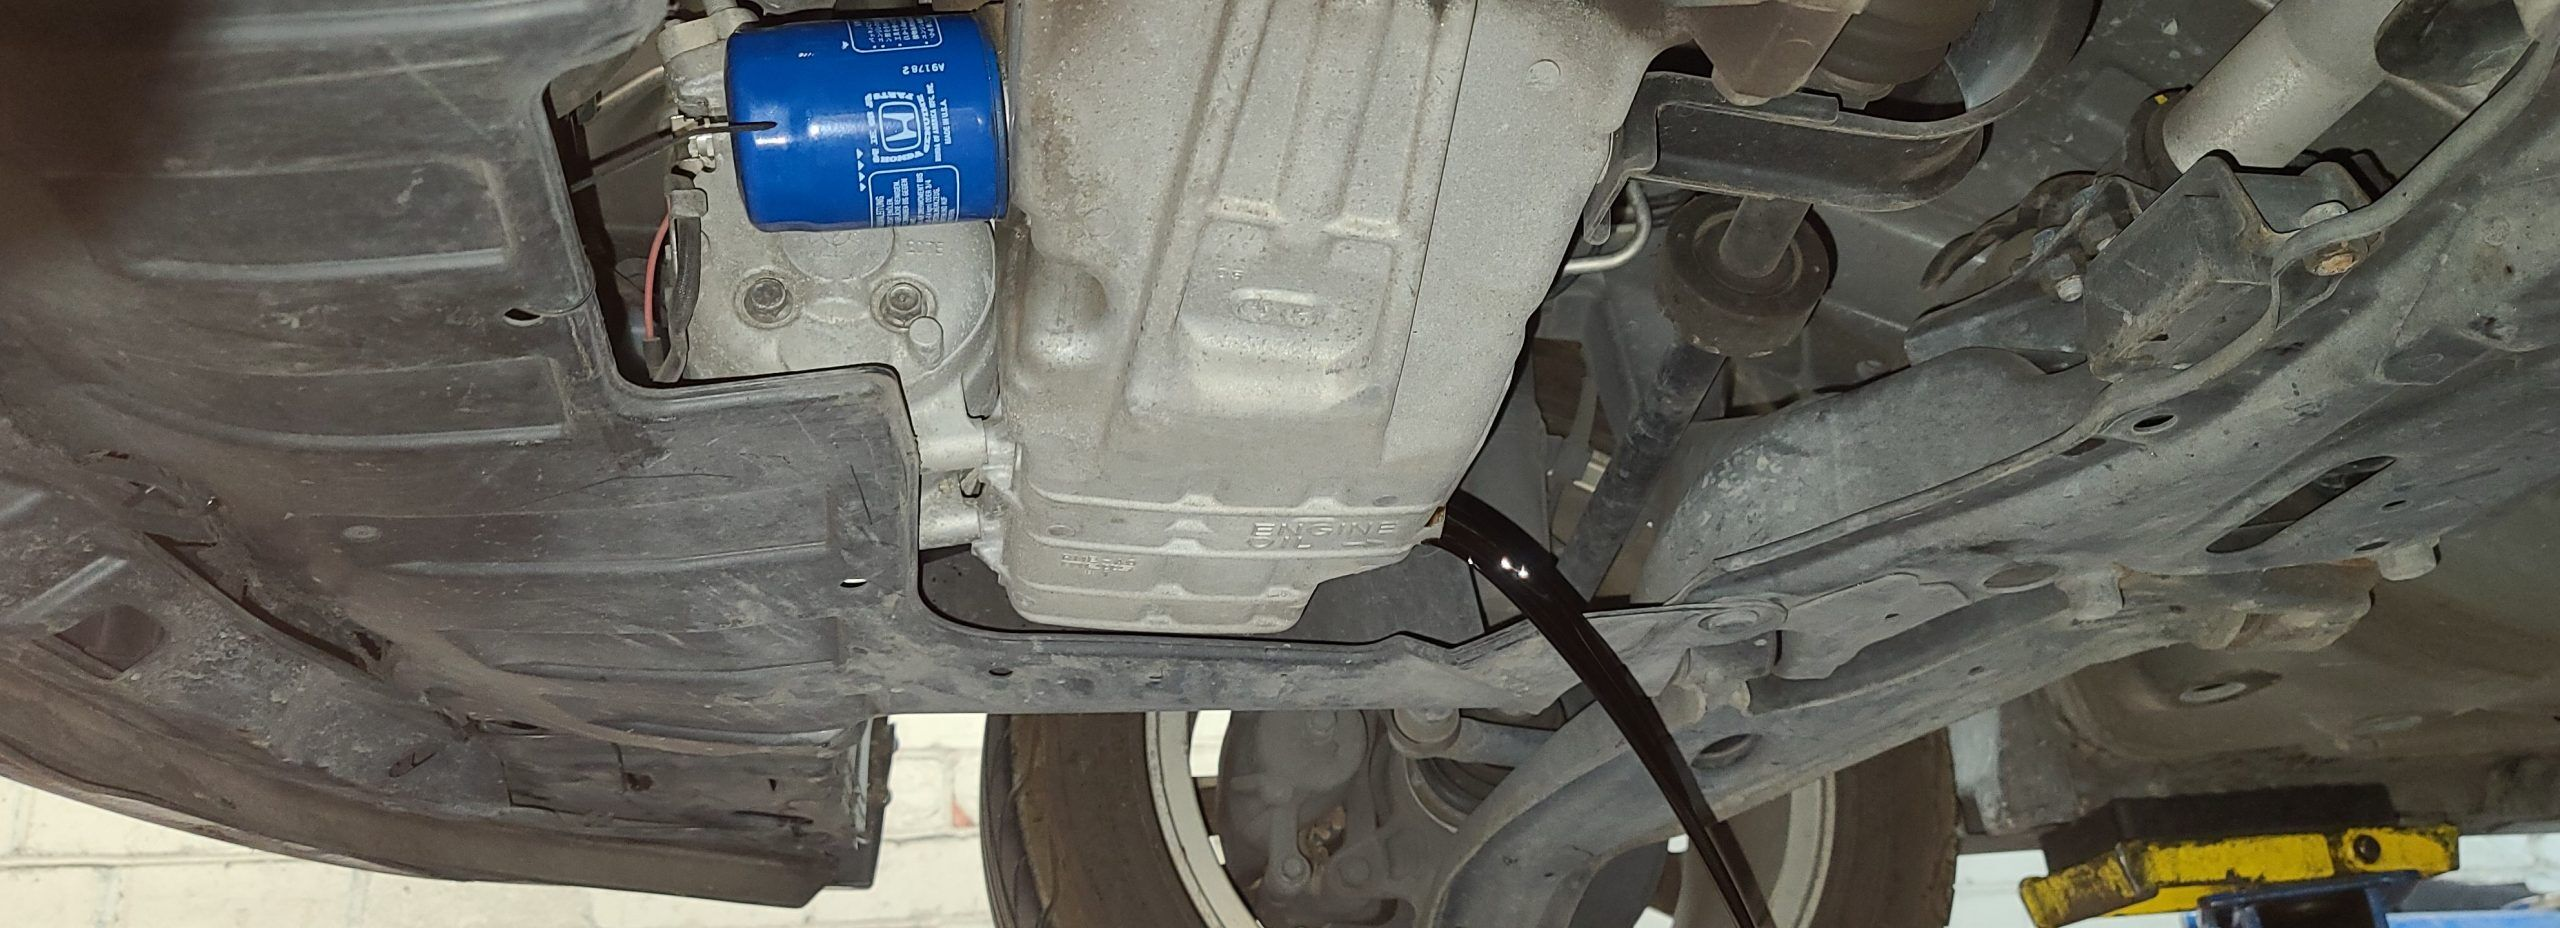 the underside of a car with motor oil draining from the oil pan.